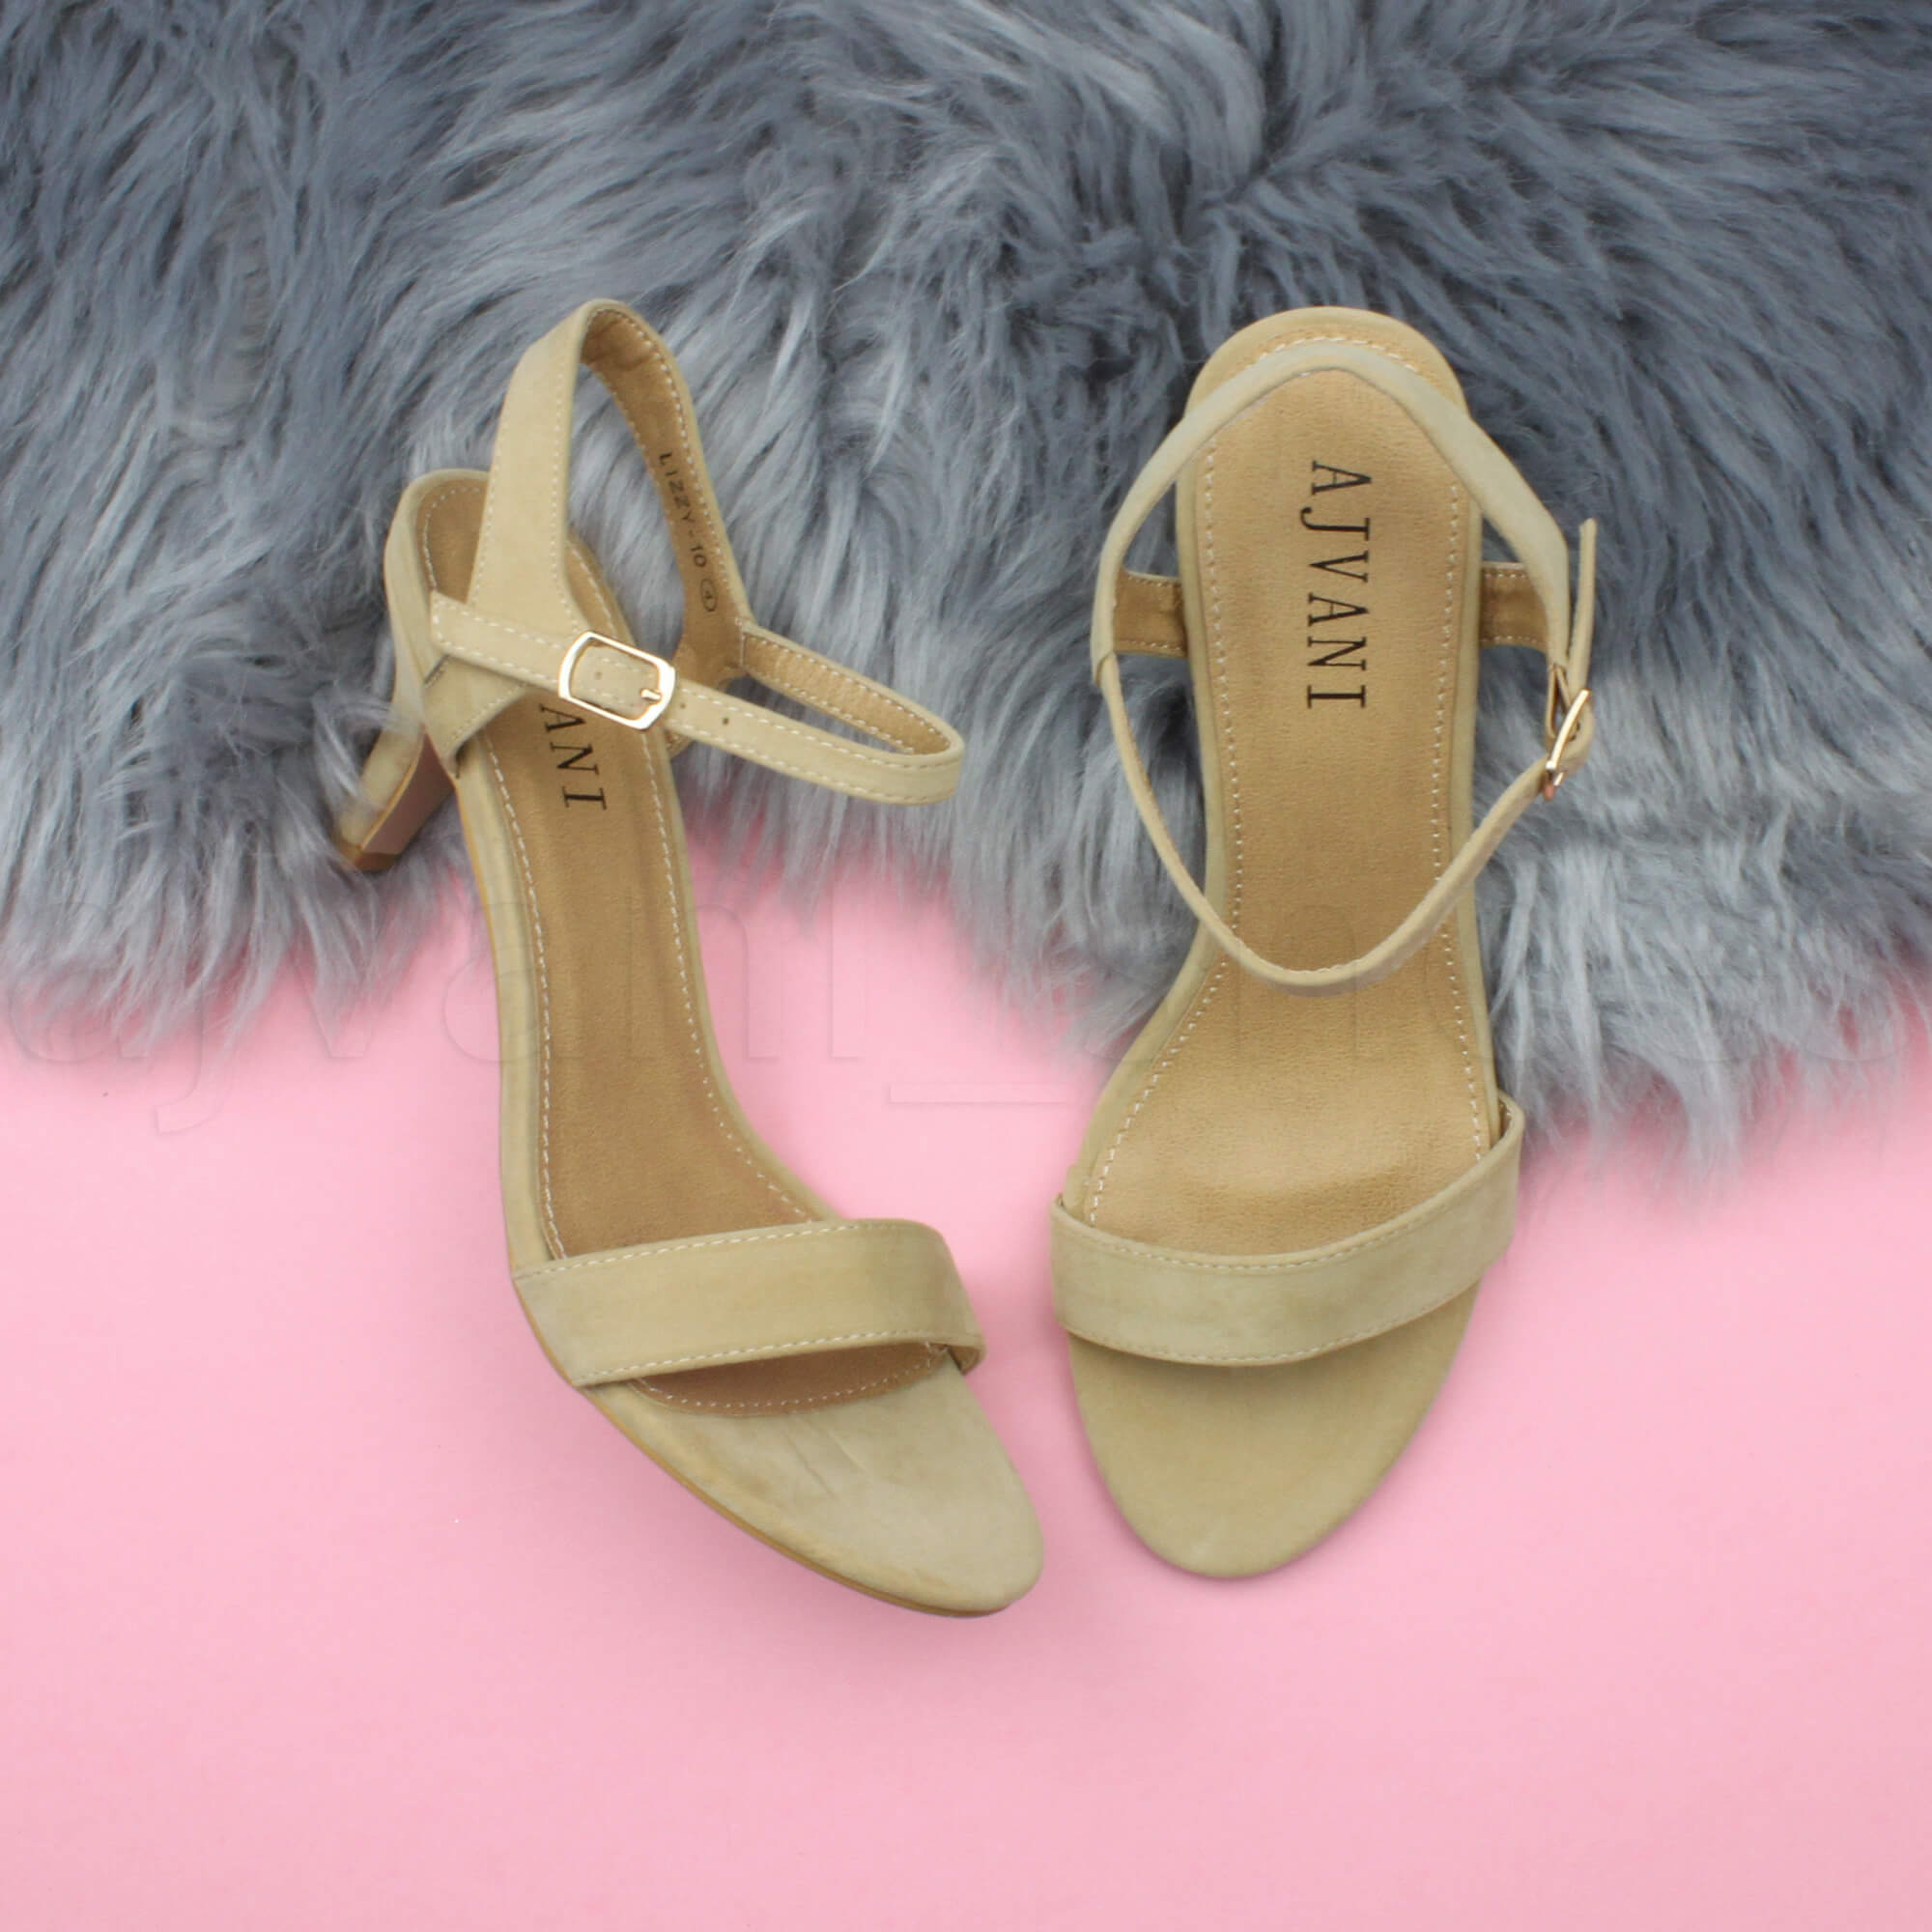 WOMENS-LADIES-HIGH-HEEL-BUCKLE-STRAPPY-BASIC-BARELY-THERE-SANDALS-SHOES-SIZE thumbnail 103